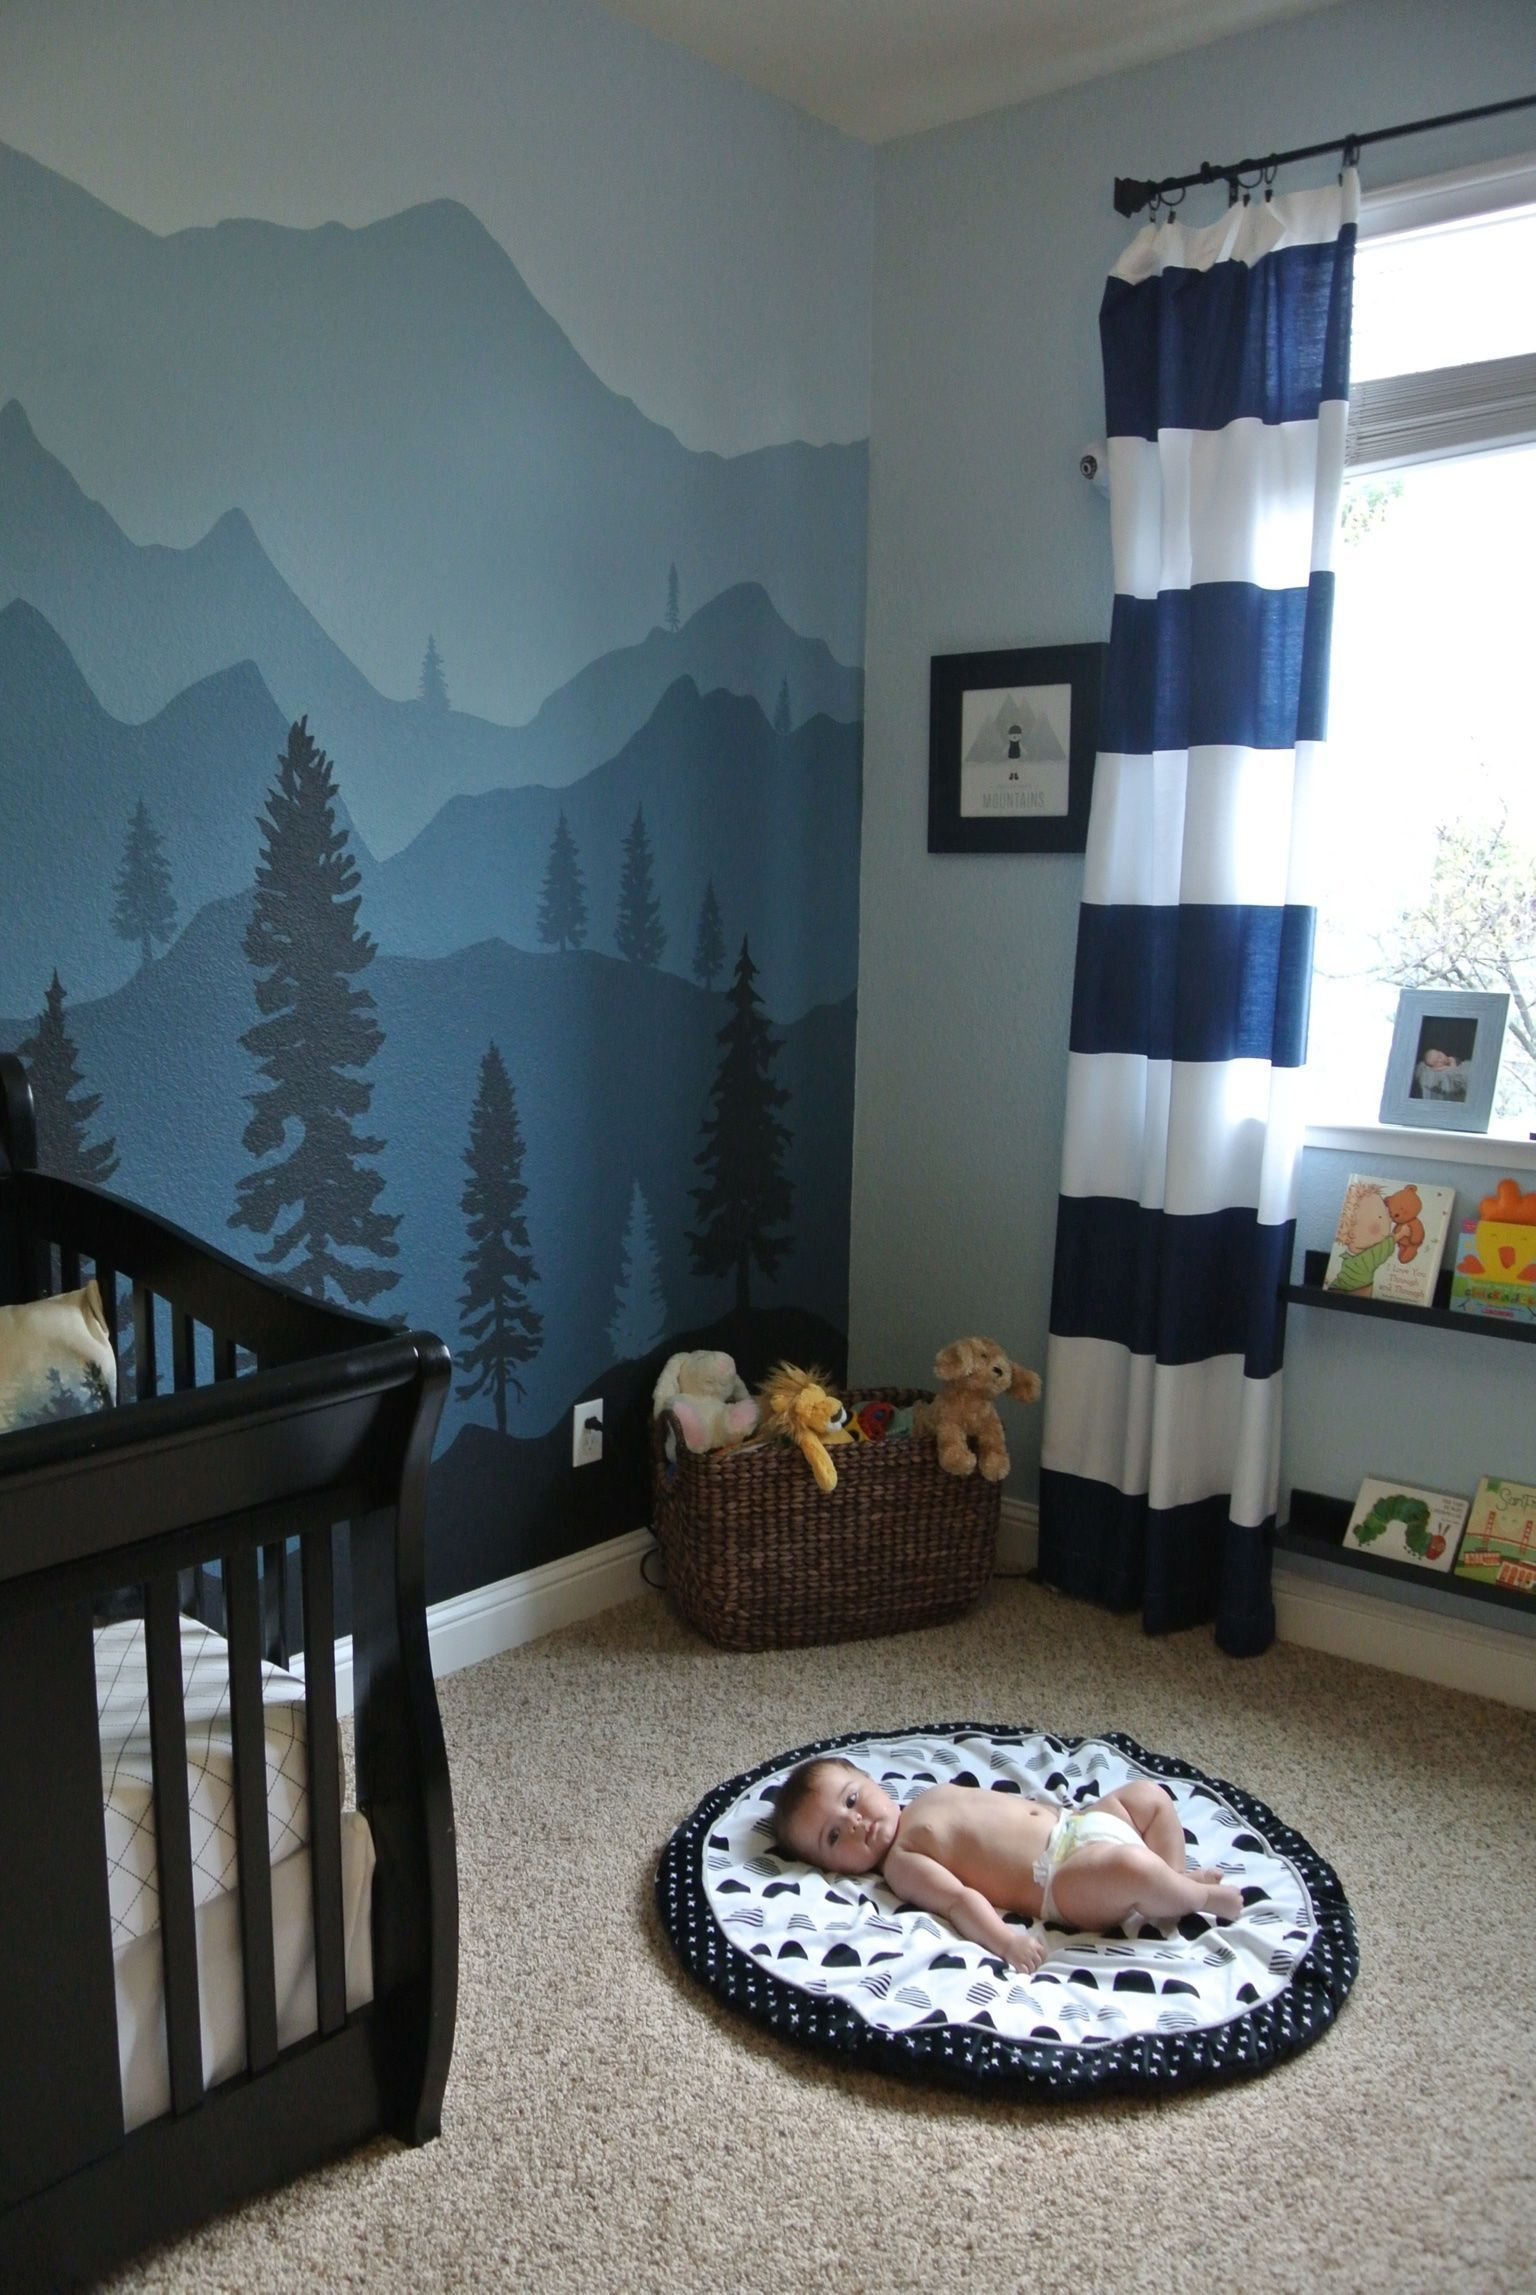 Baby Jungen Zimmer Ideen Maddoxs Mountain Nursery Ba Room Ba Boy Nurseries For Baby Boy Room Decor# Baby #boy #decor… In 2020 | Kinderzimmer Ideen Für Jungen, Kinder Zimmer Ideen, Kinderzimmer Ideen